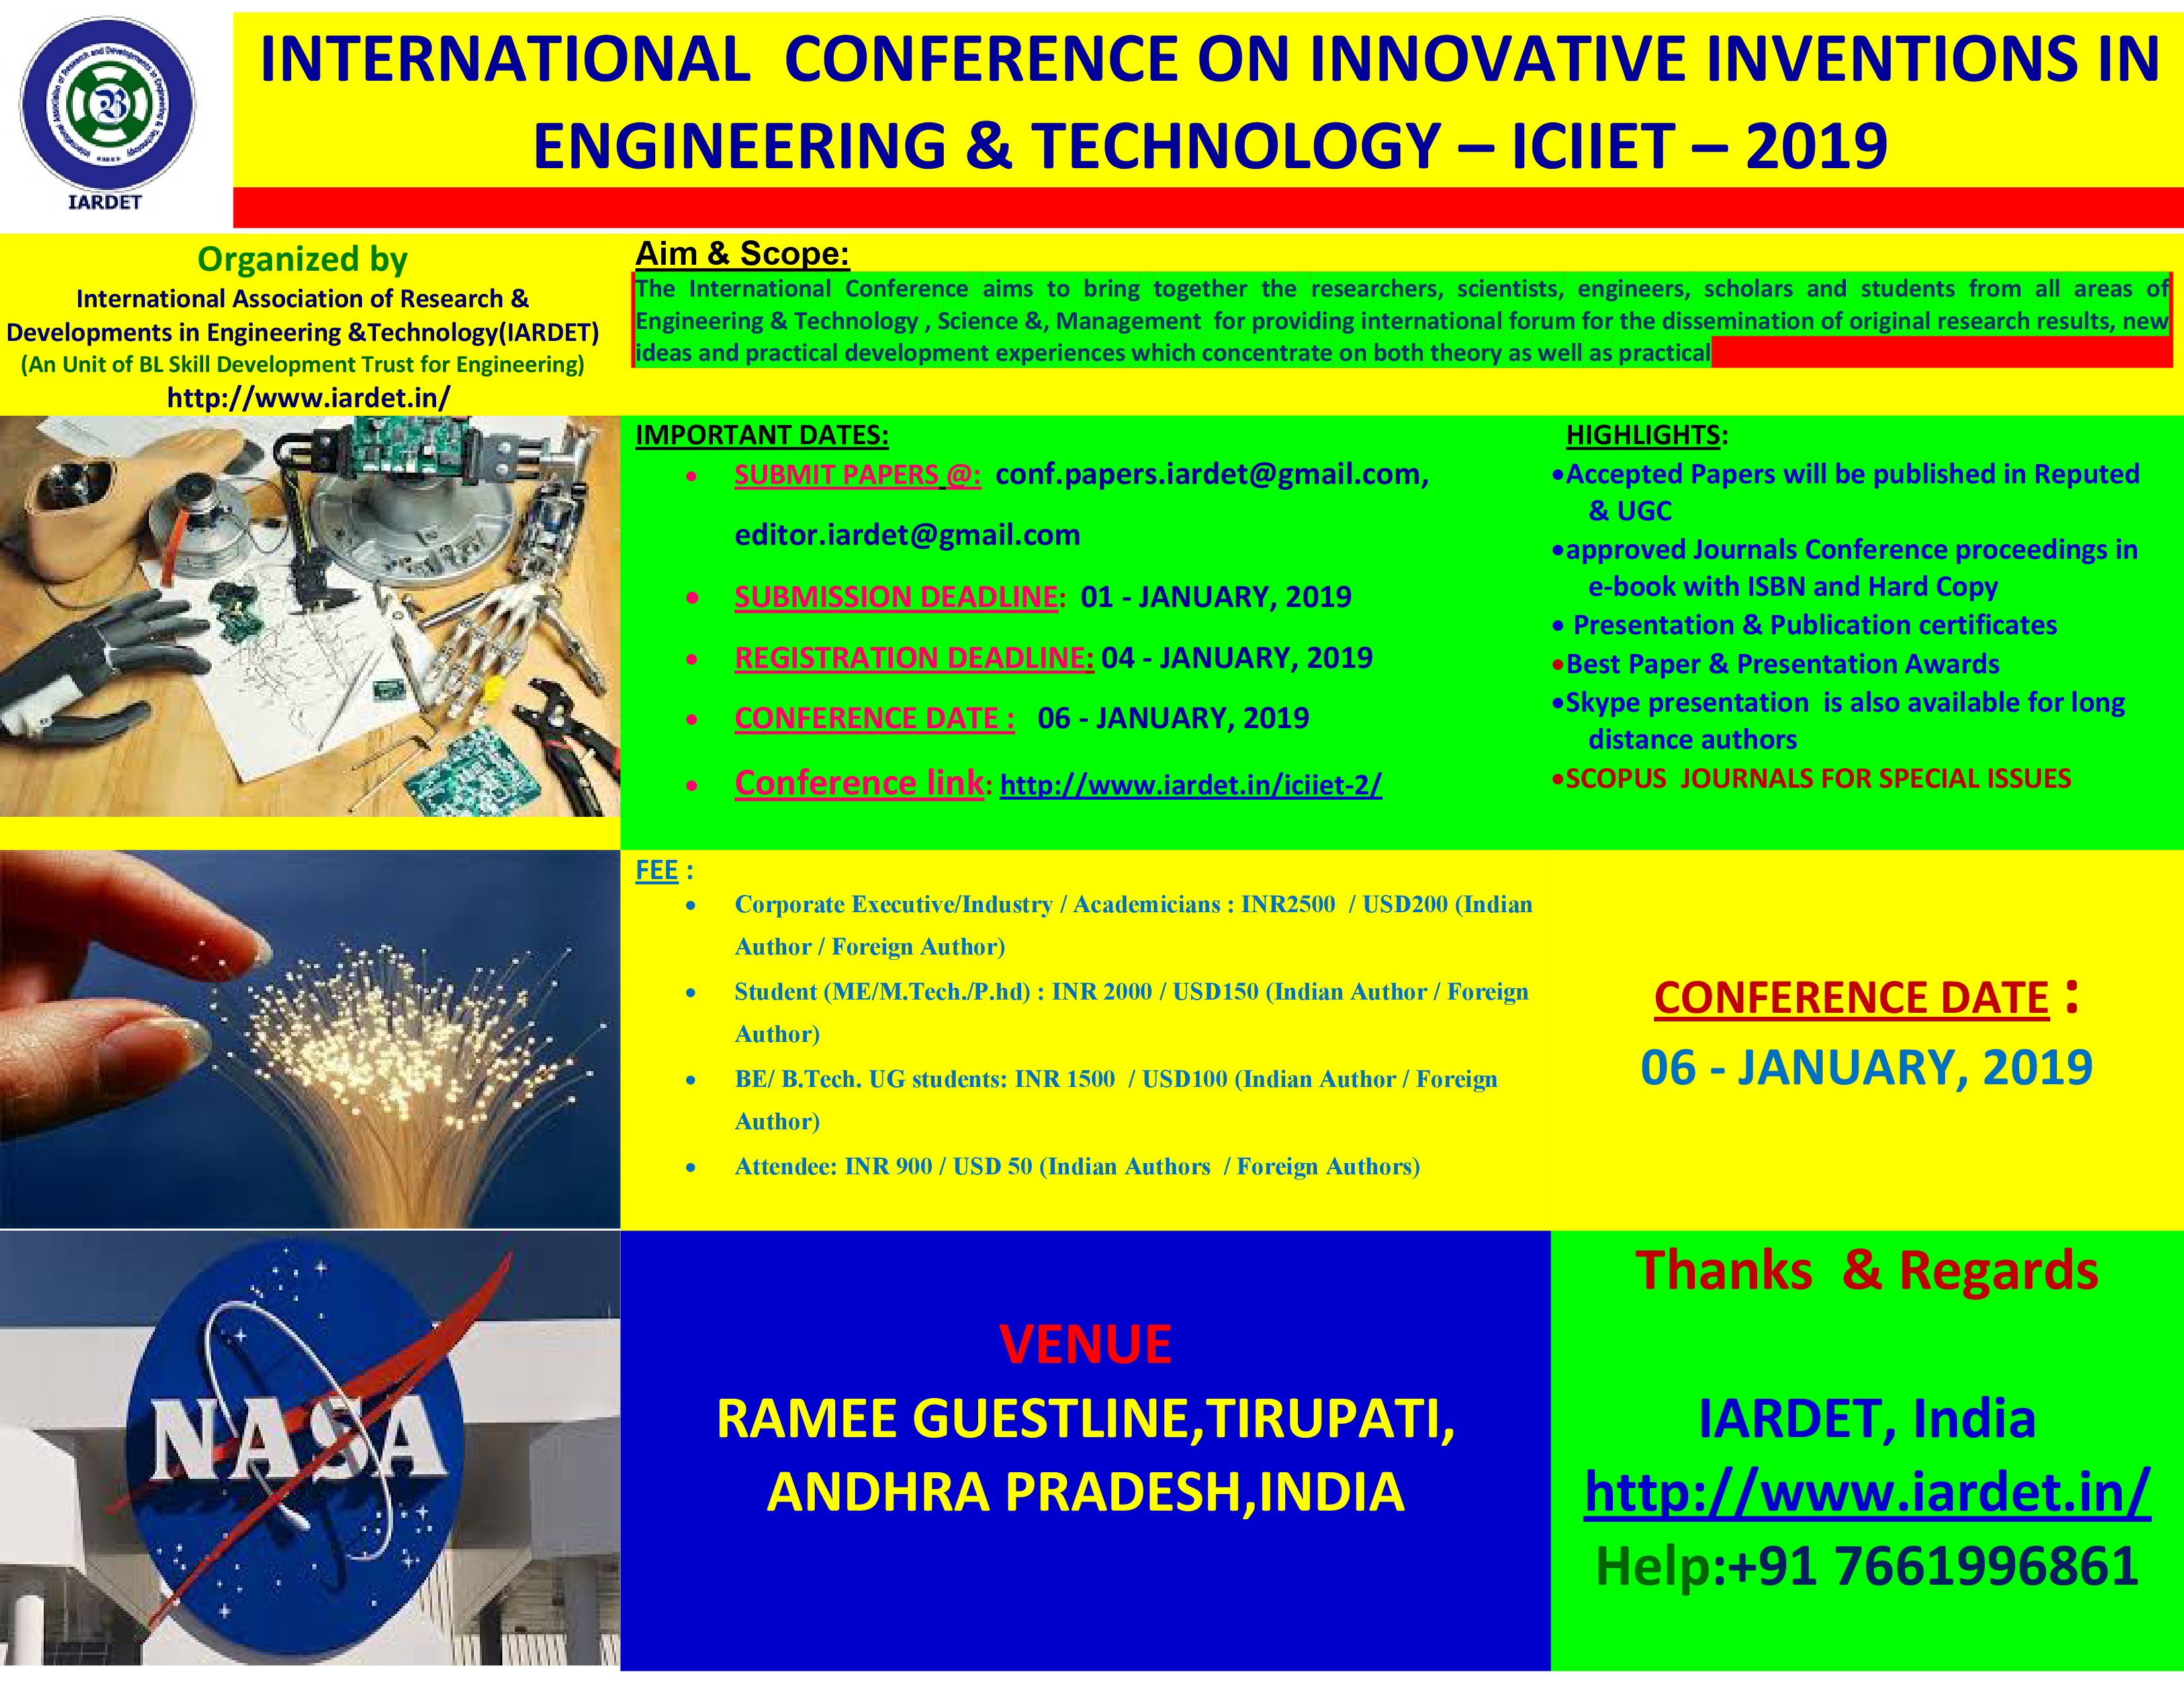 5th International Conference on Innovative Inventions in